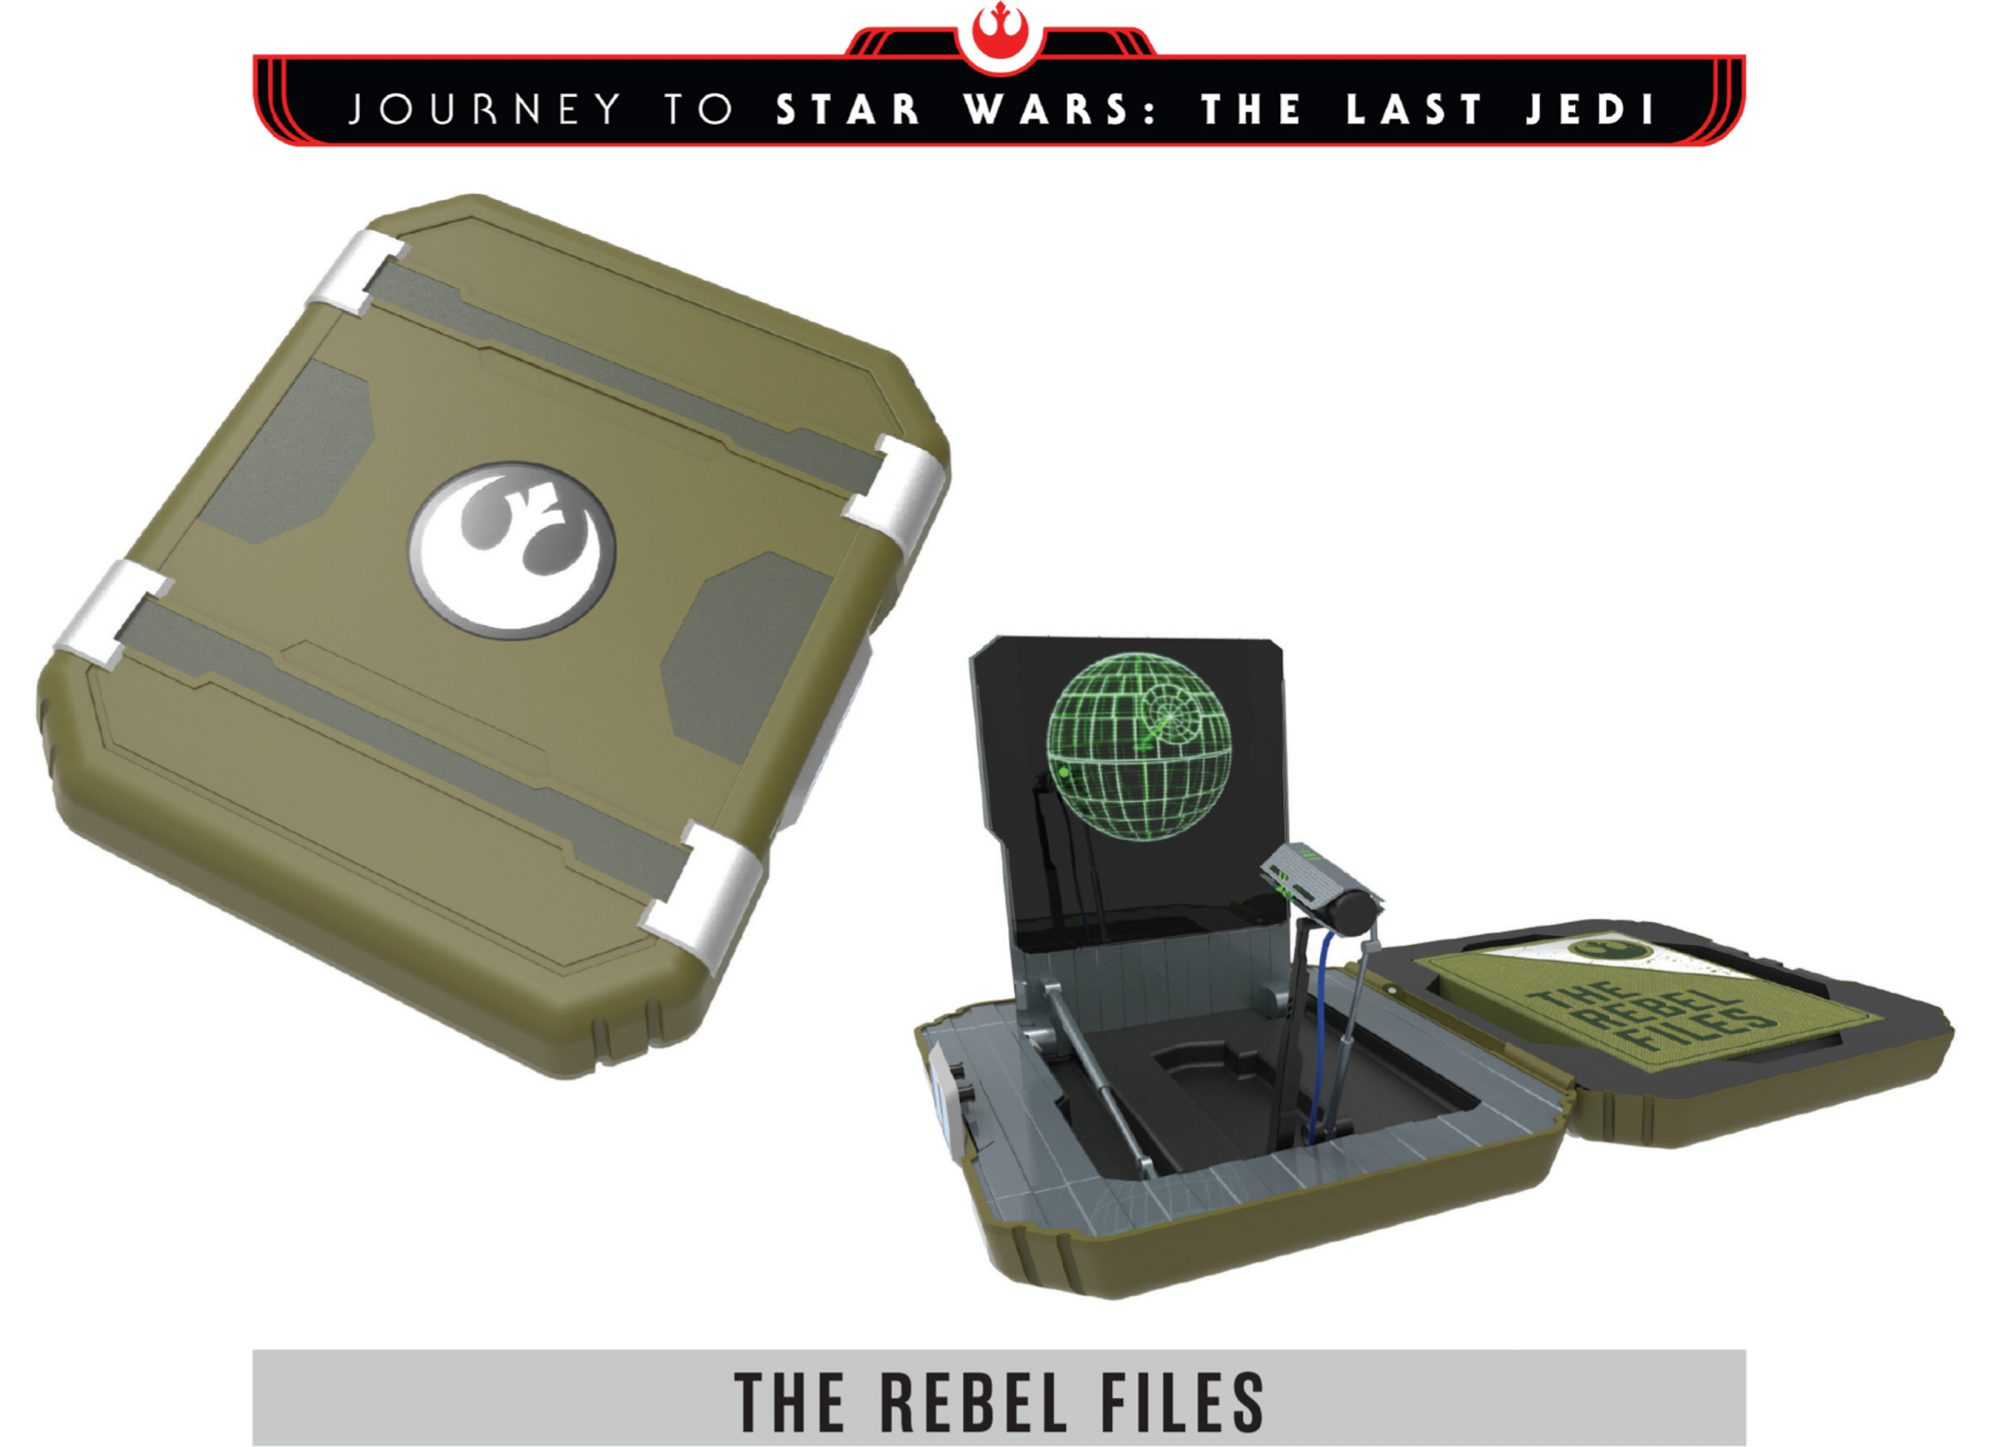 The Last Jedi: The Rebel Files, by Dan Wallace